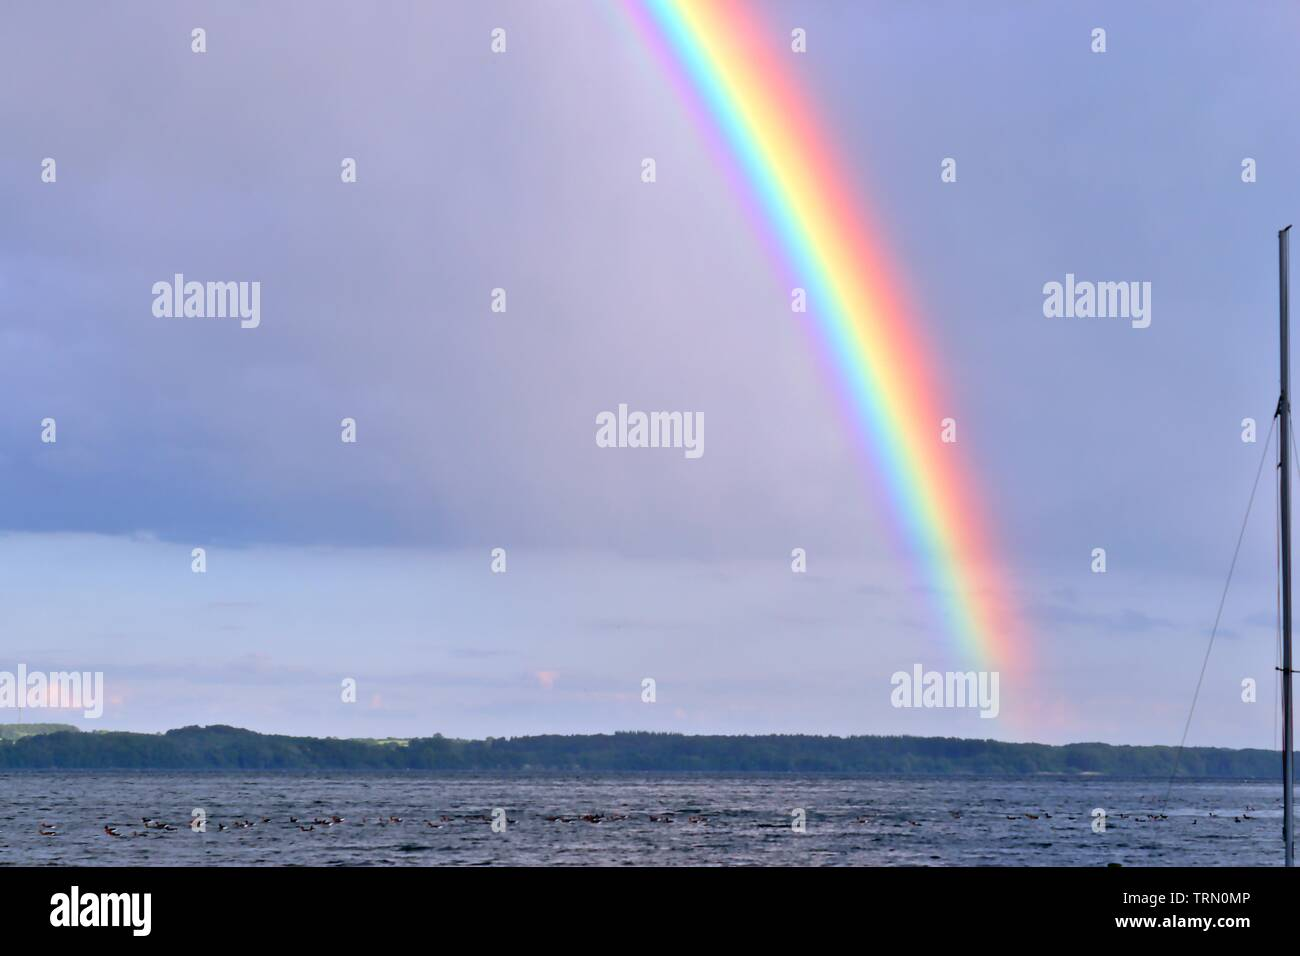 Stunning natural double rainbows plus supernumerary bows seen at a lake in northern germany - Stock Image